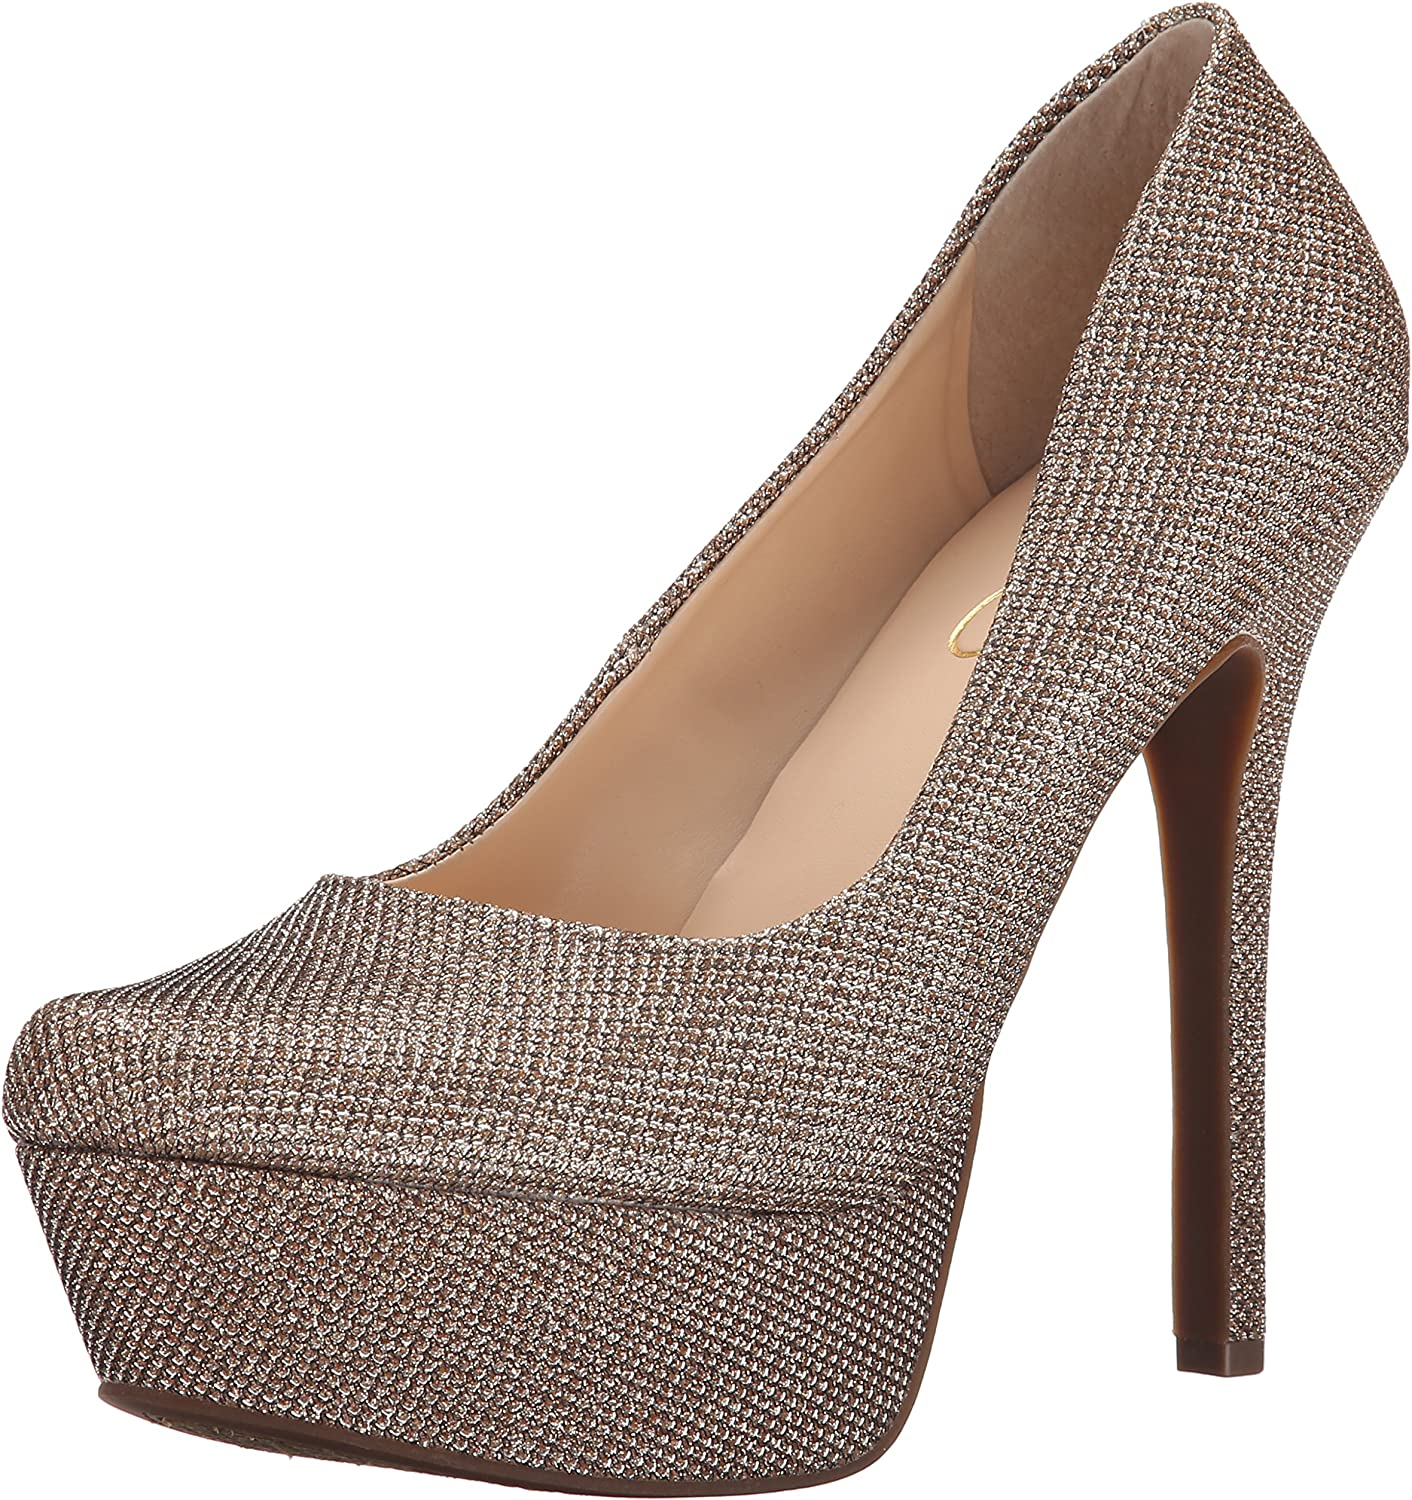 Jessica Simpson Women's Waleo Pump